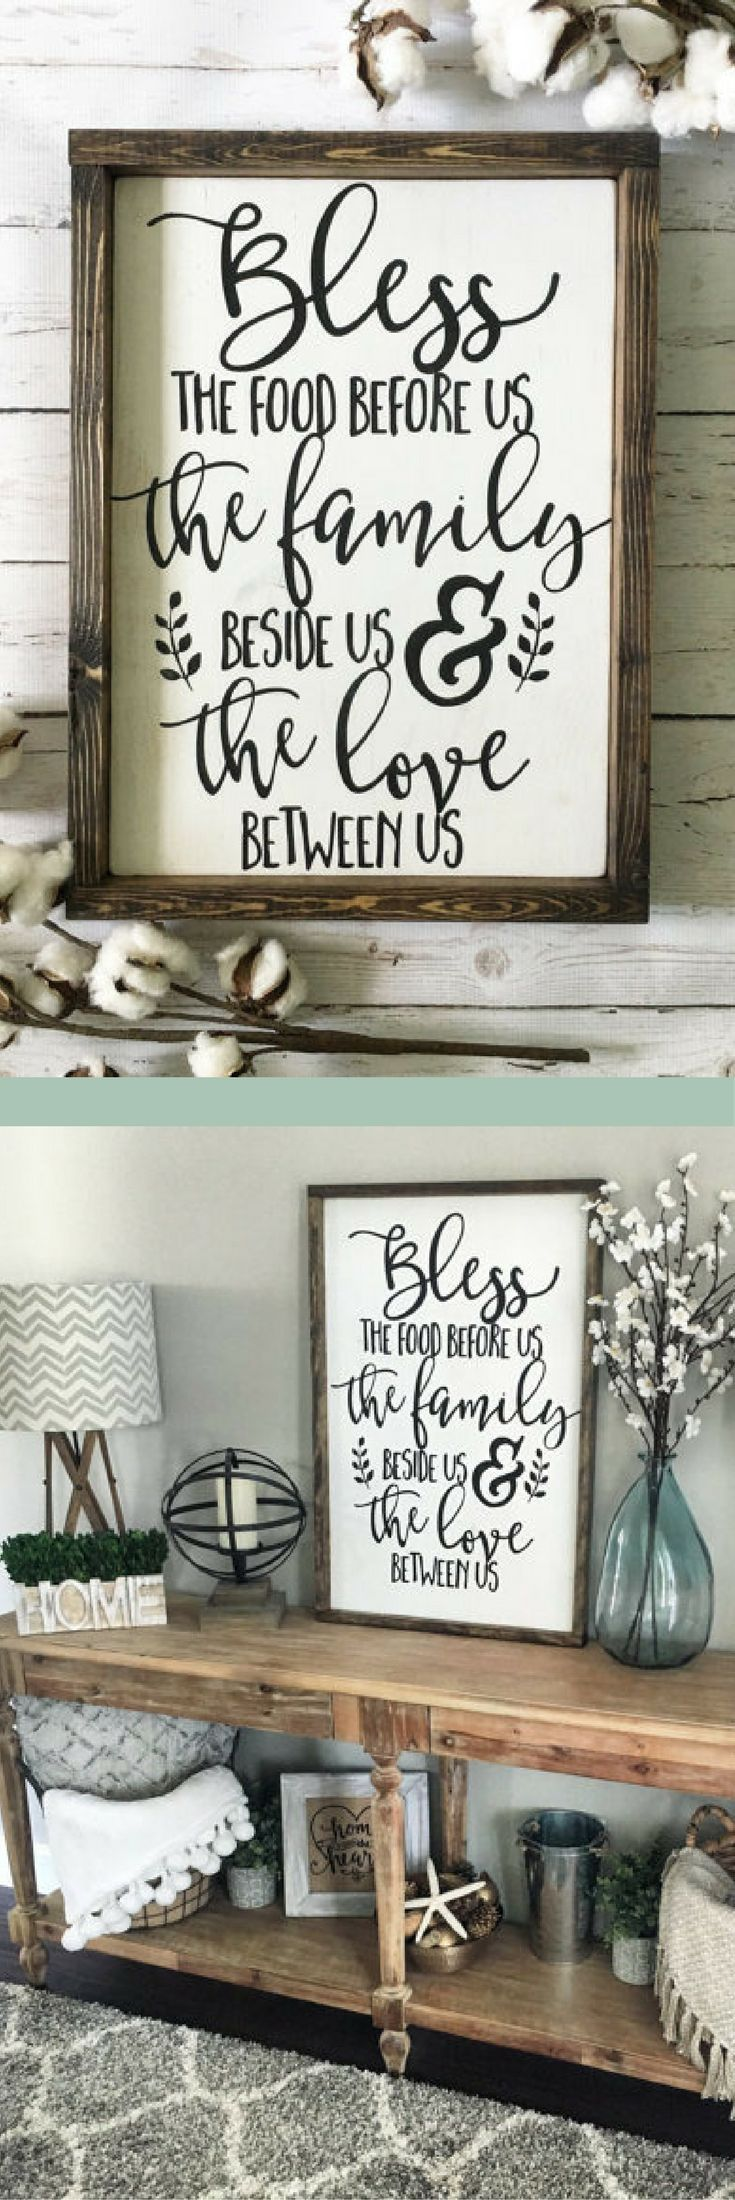 Bless The Food Before Us Wood Sign, Rustic Wood Sign, Framed Sign, Kitchen